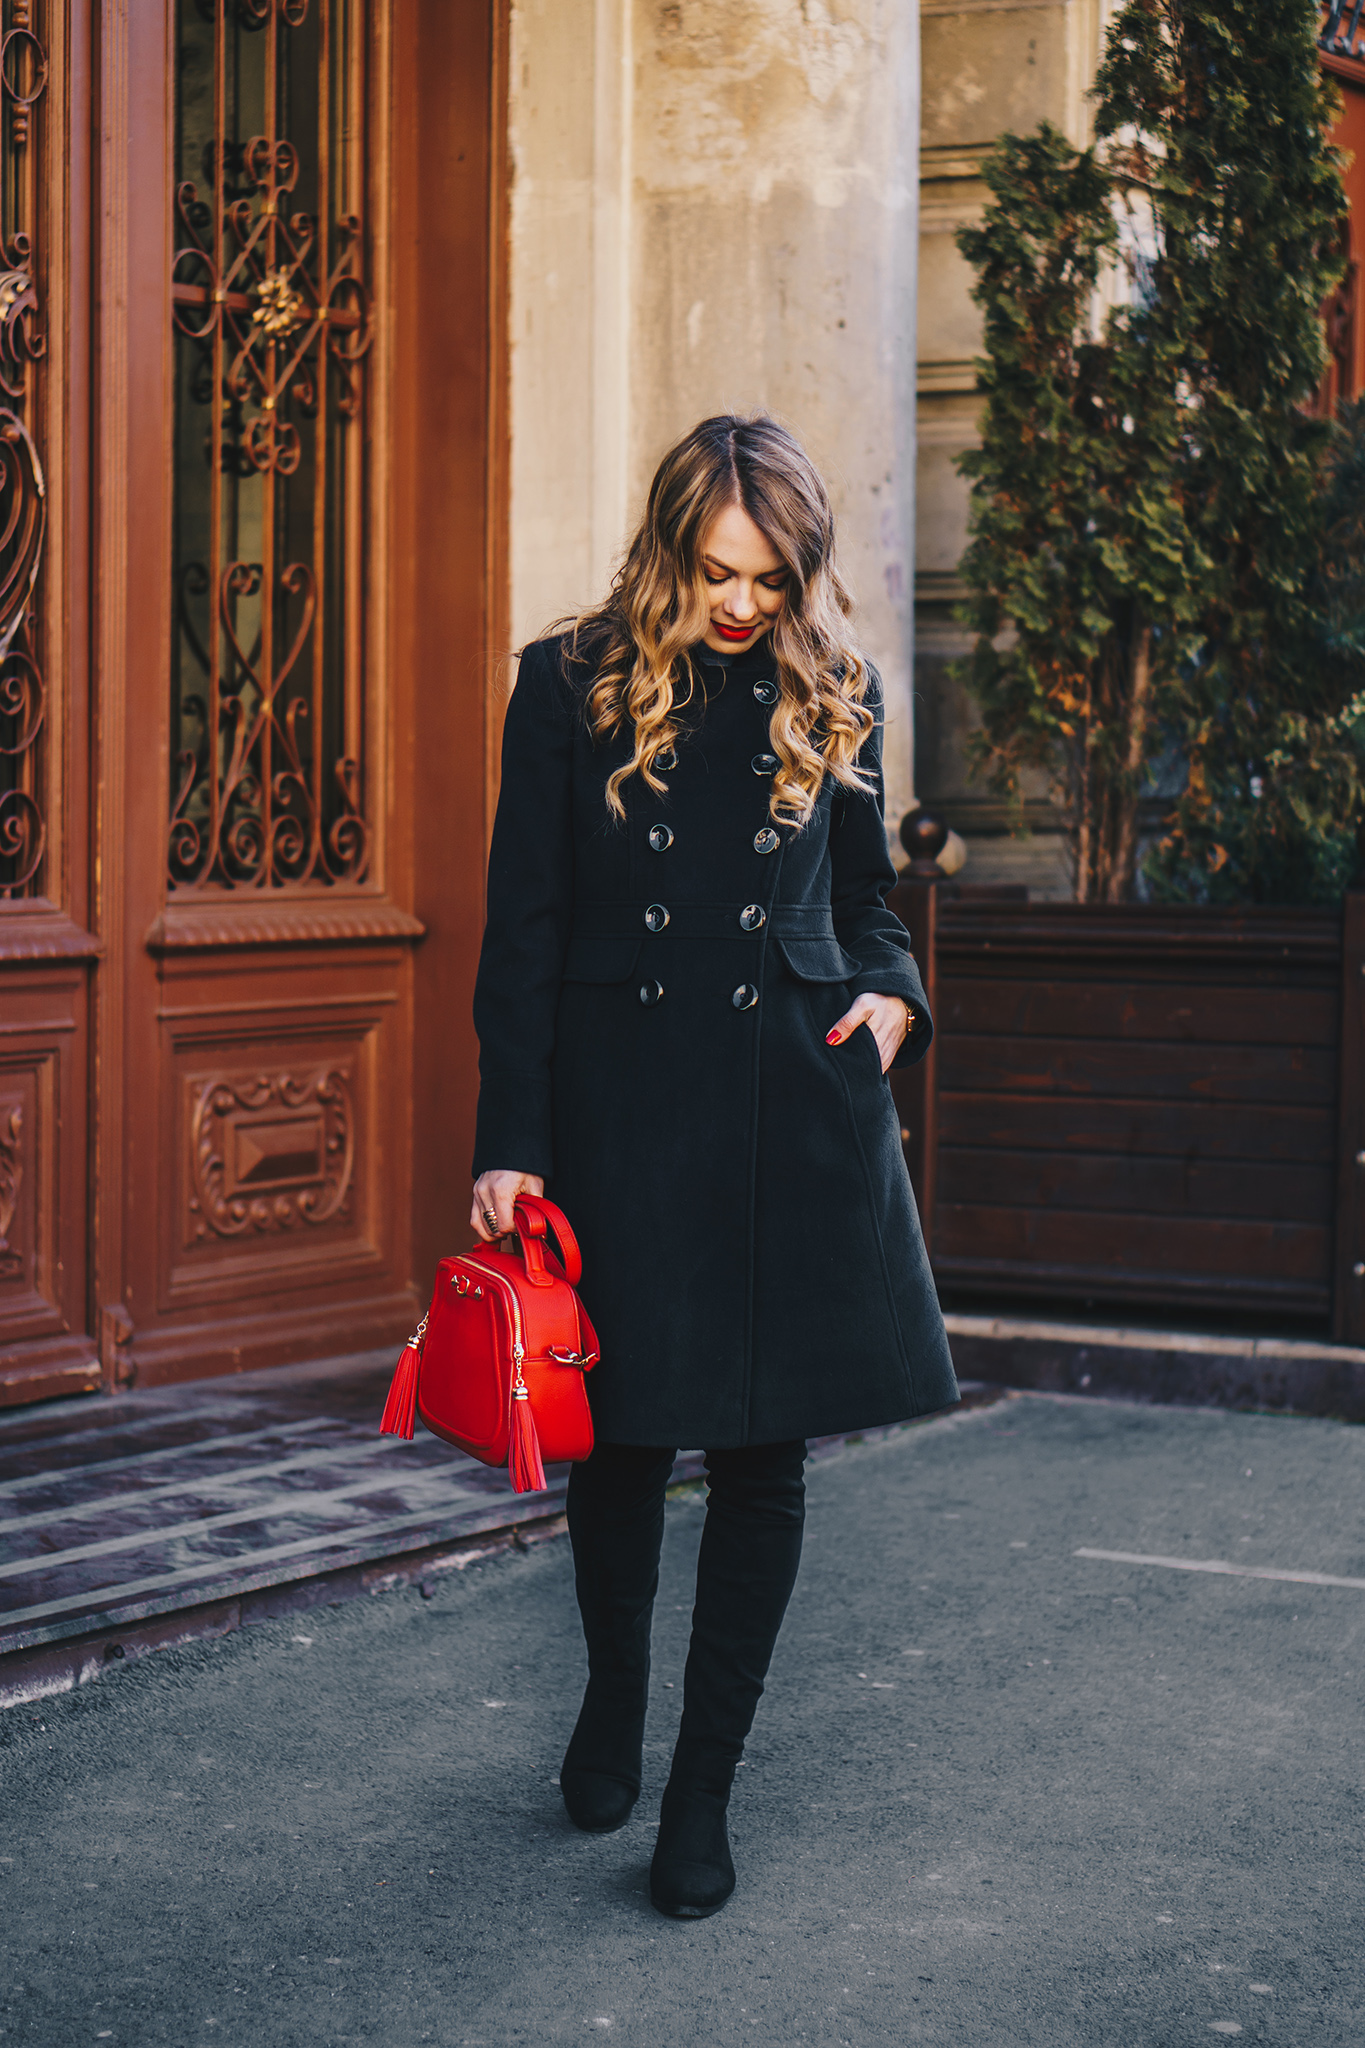 black-coat-red-plaid-skirt-over-the-knee-boots-winter-outfit-3